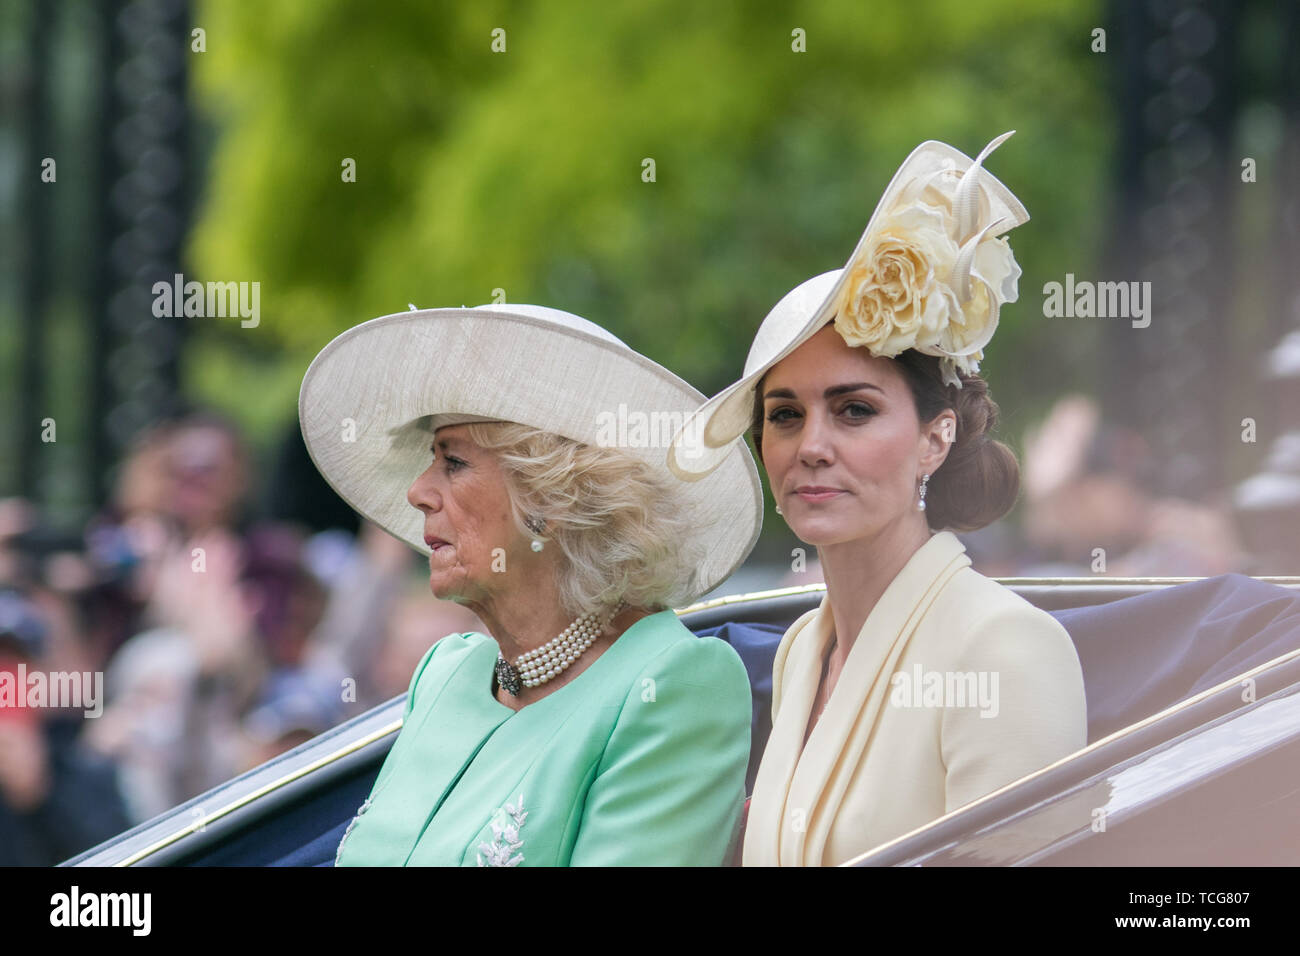 London, UK. 8th June, 2019. Kate and Camilla The Duchesses of Cambridge and Cornwall ride on an open top carriage along The Mall during the Queen's Birthday parade Credit: amer ghazzal/Alamy Live News Stock Photo